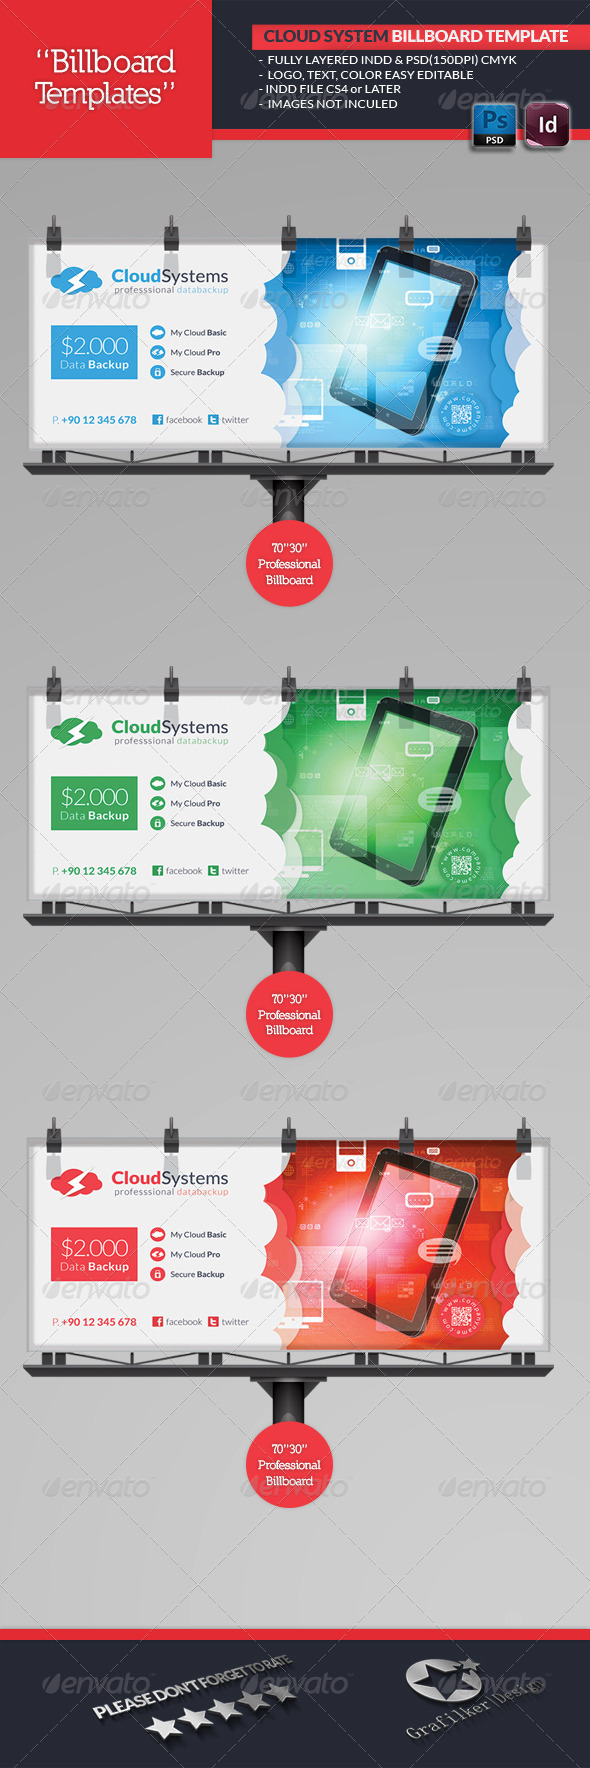 Cloud Systems Billboard Template - Signage Print Templates